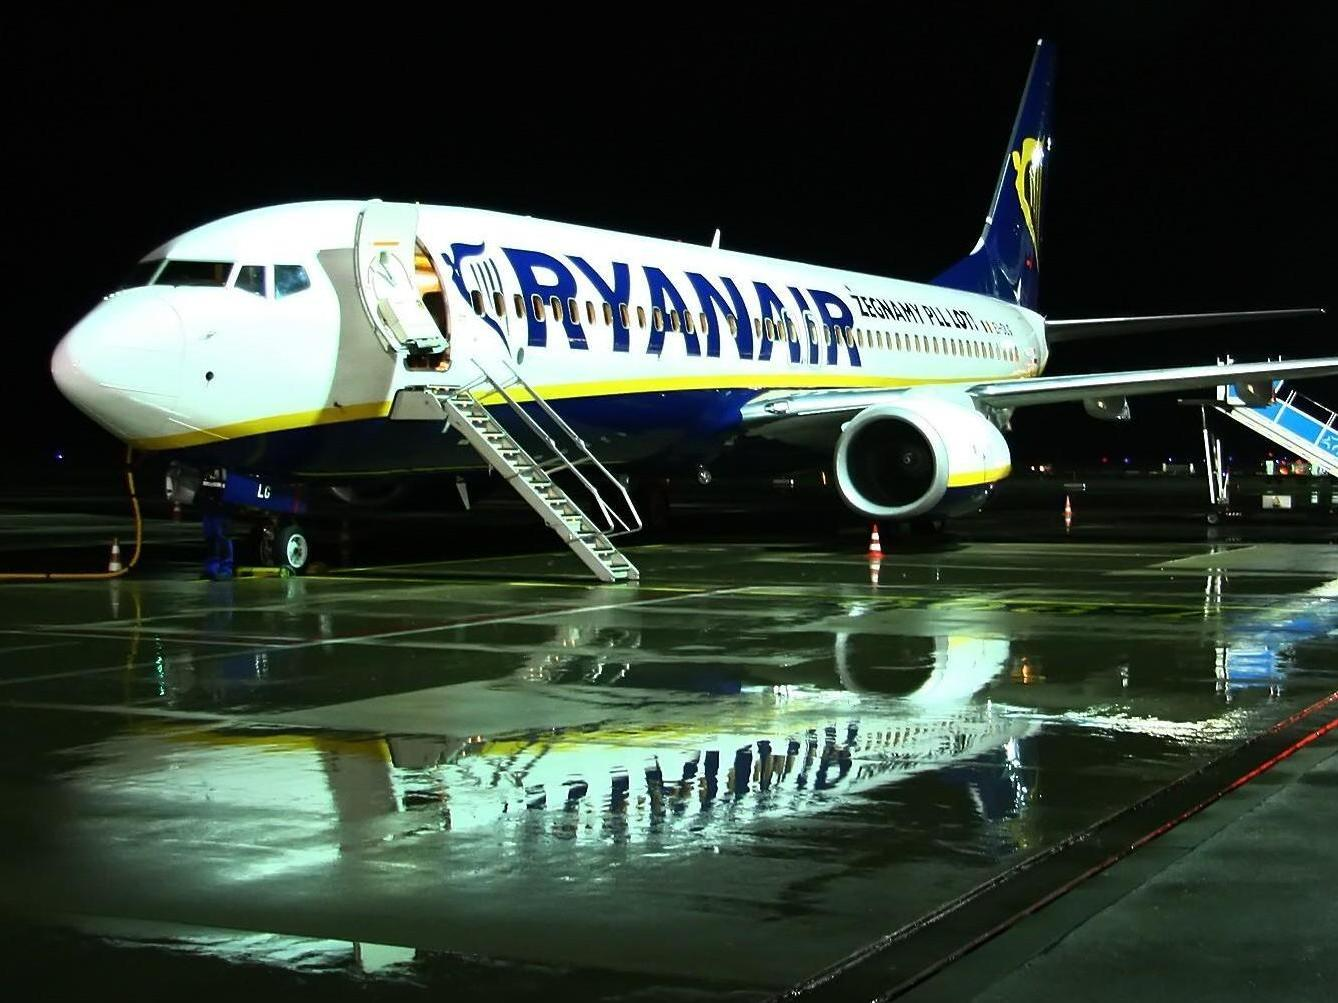 Ryanair: Can the airline keep its promise to passengers during pilots' union strike?